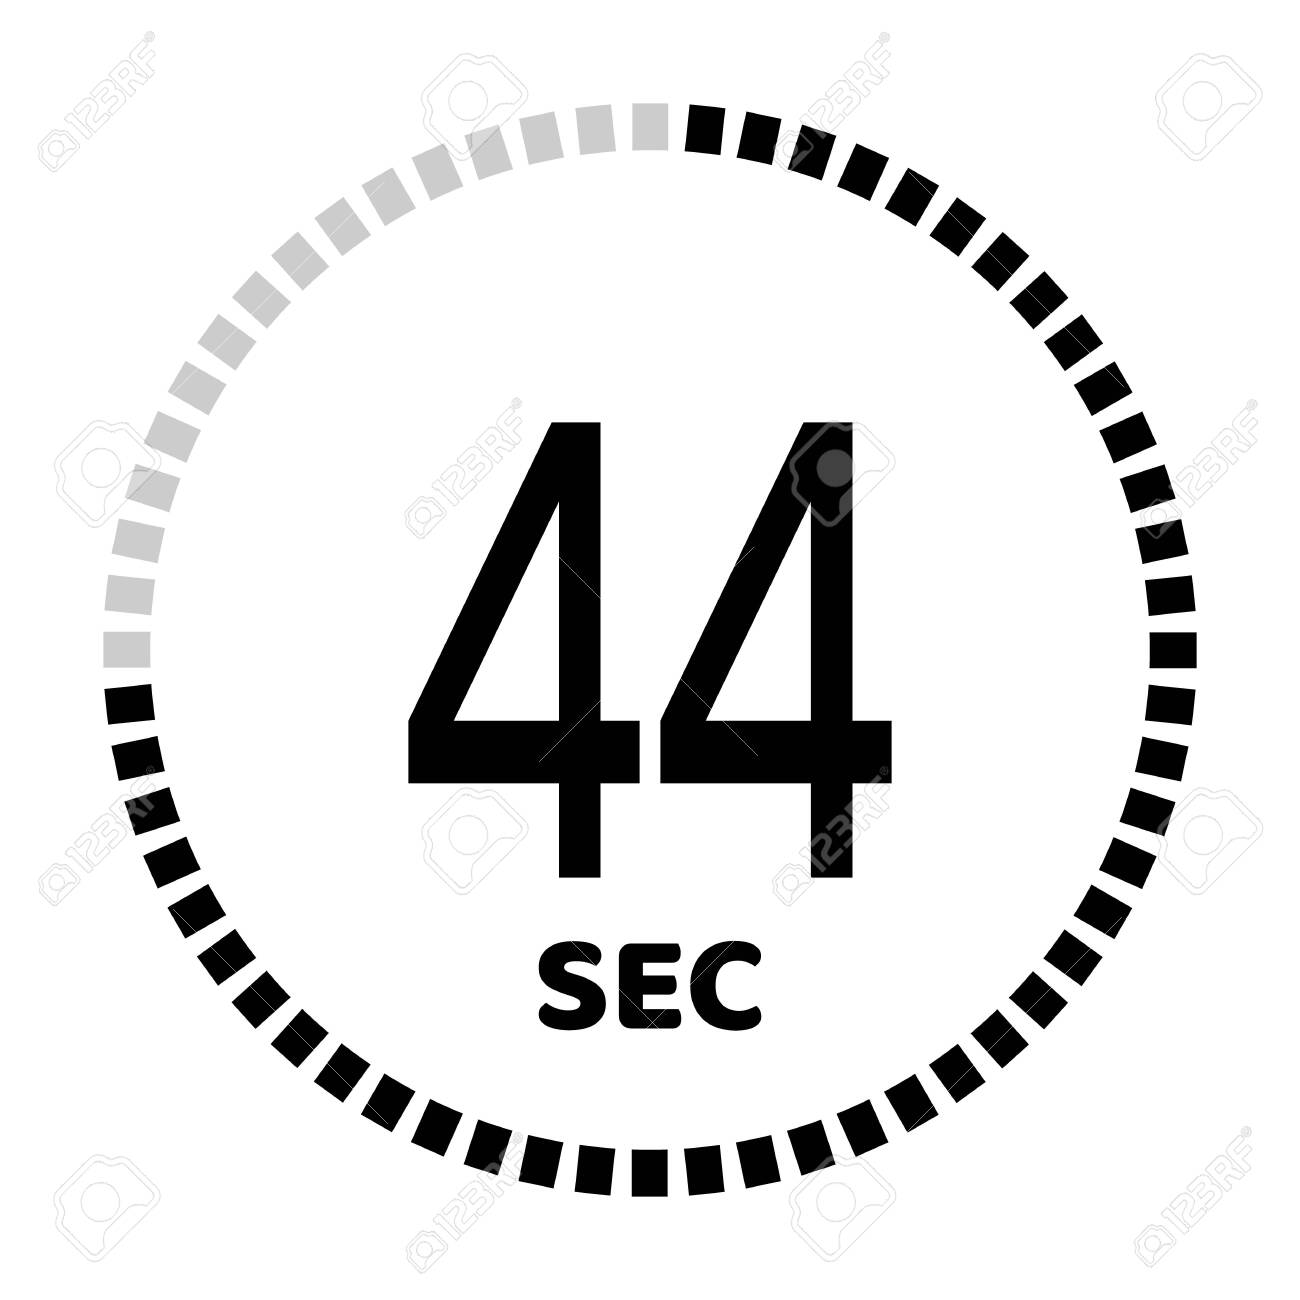 The 44 seconds, stopwatch icon, digital timer. Digital Countdown Timer Vector Icon. Clock and watch, timer. - 127834341